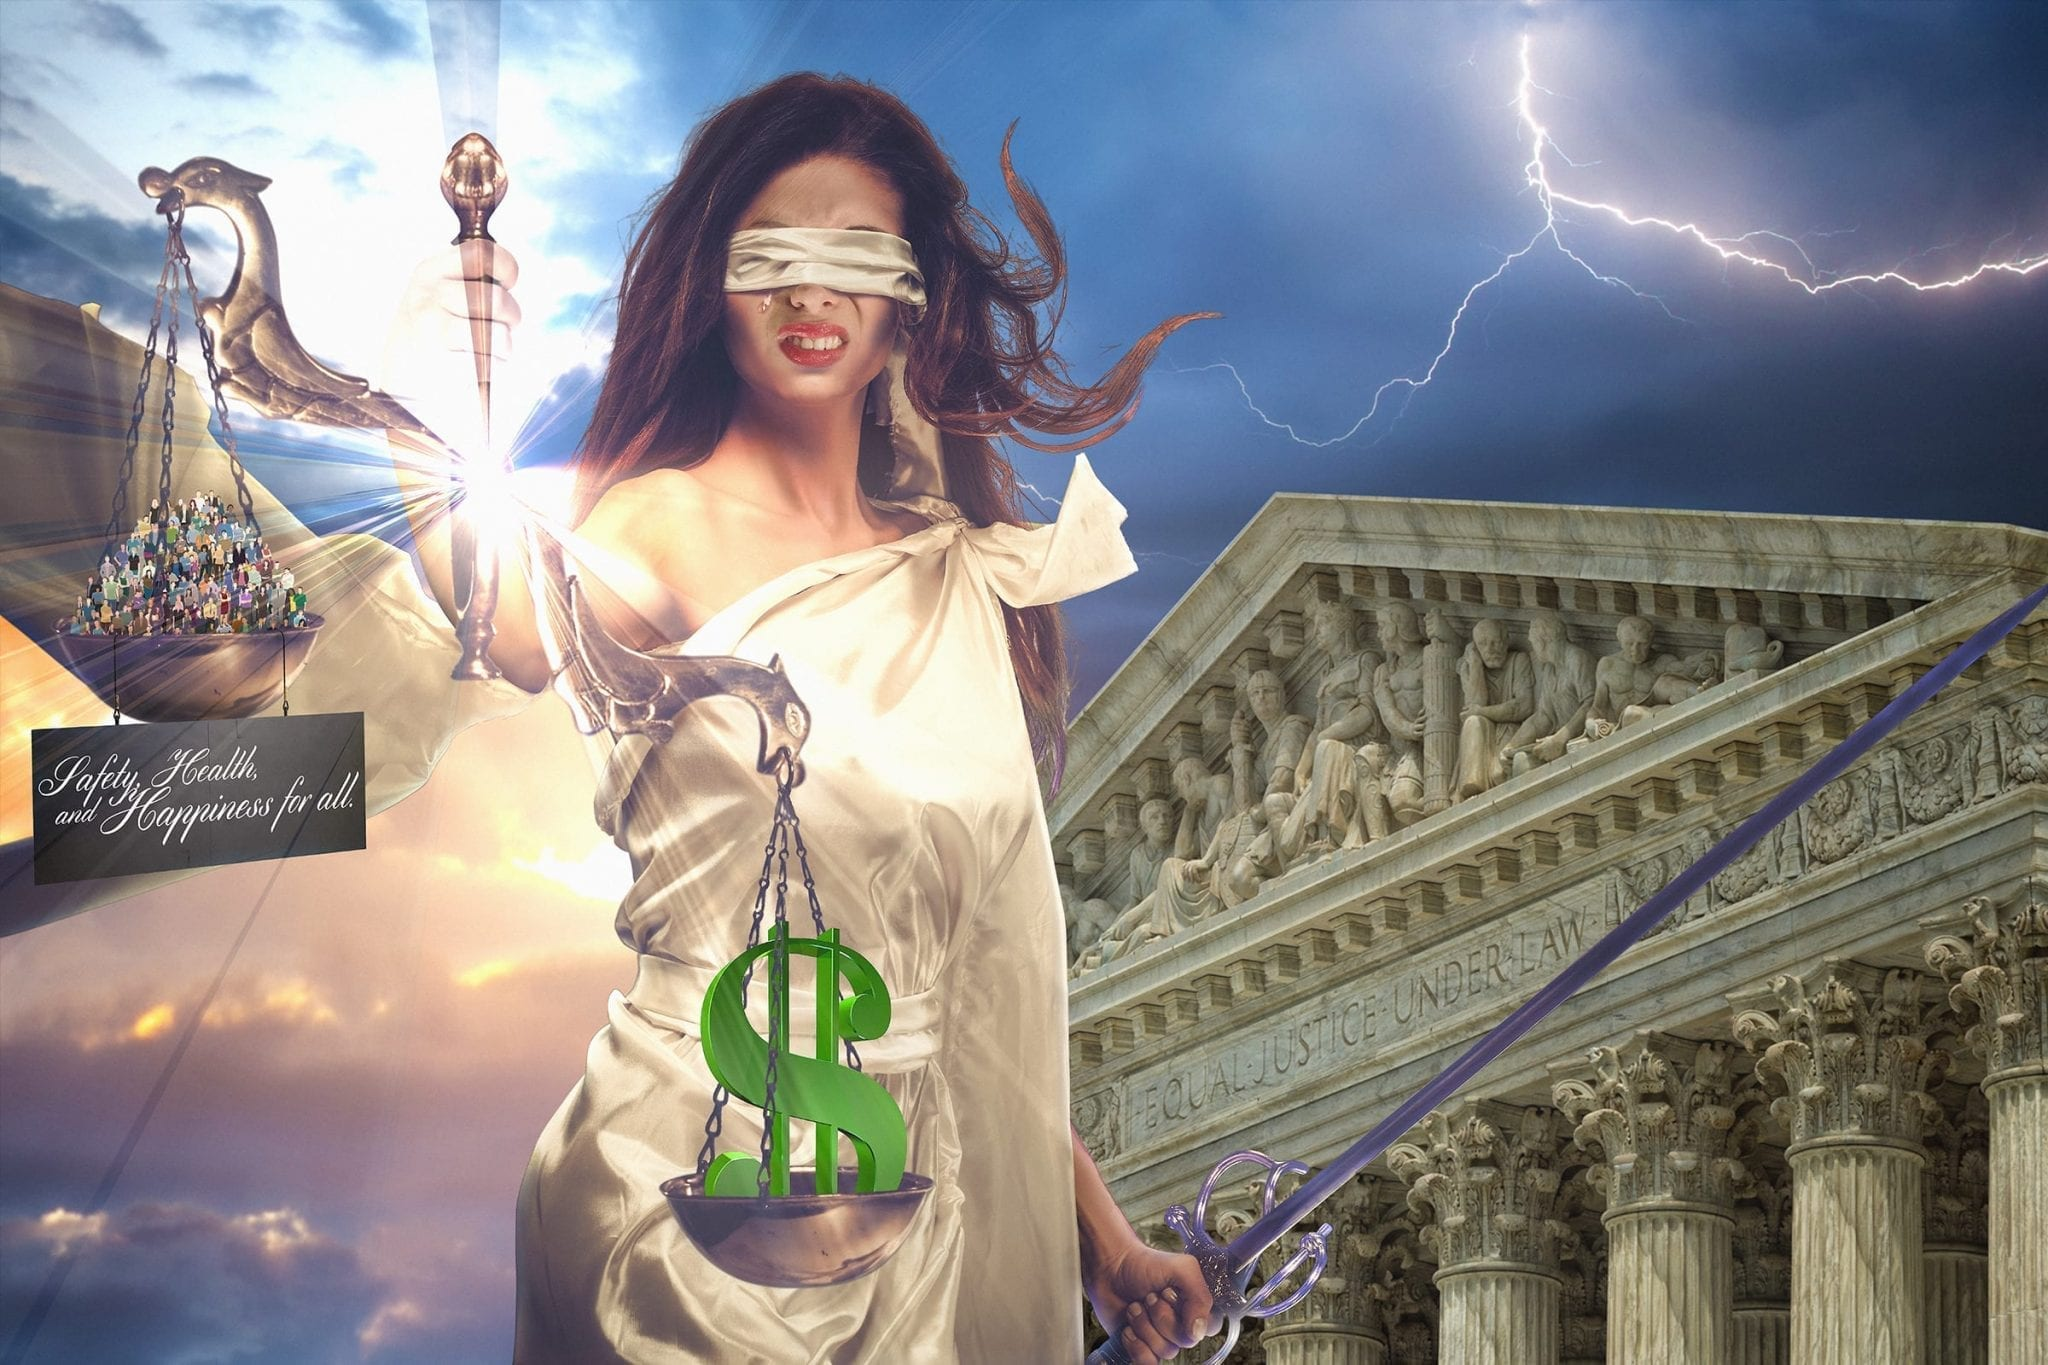 """""""Safety, health, and happiness for all;"""" Lady Justice graphic by Neil Angeles."""